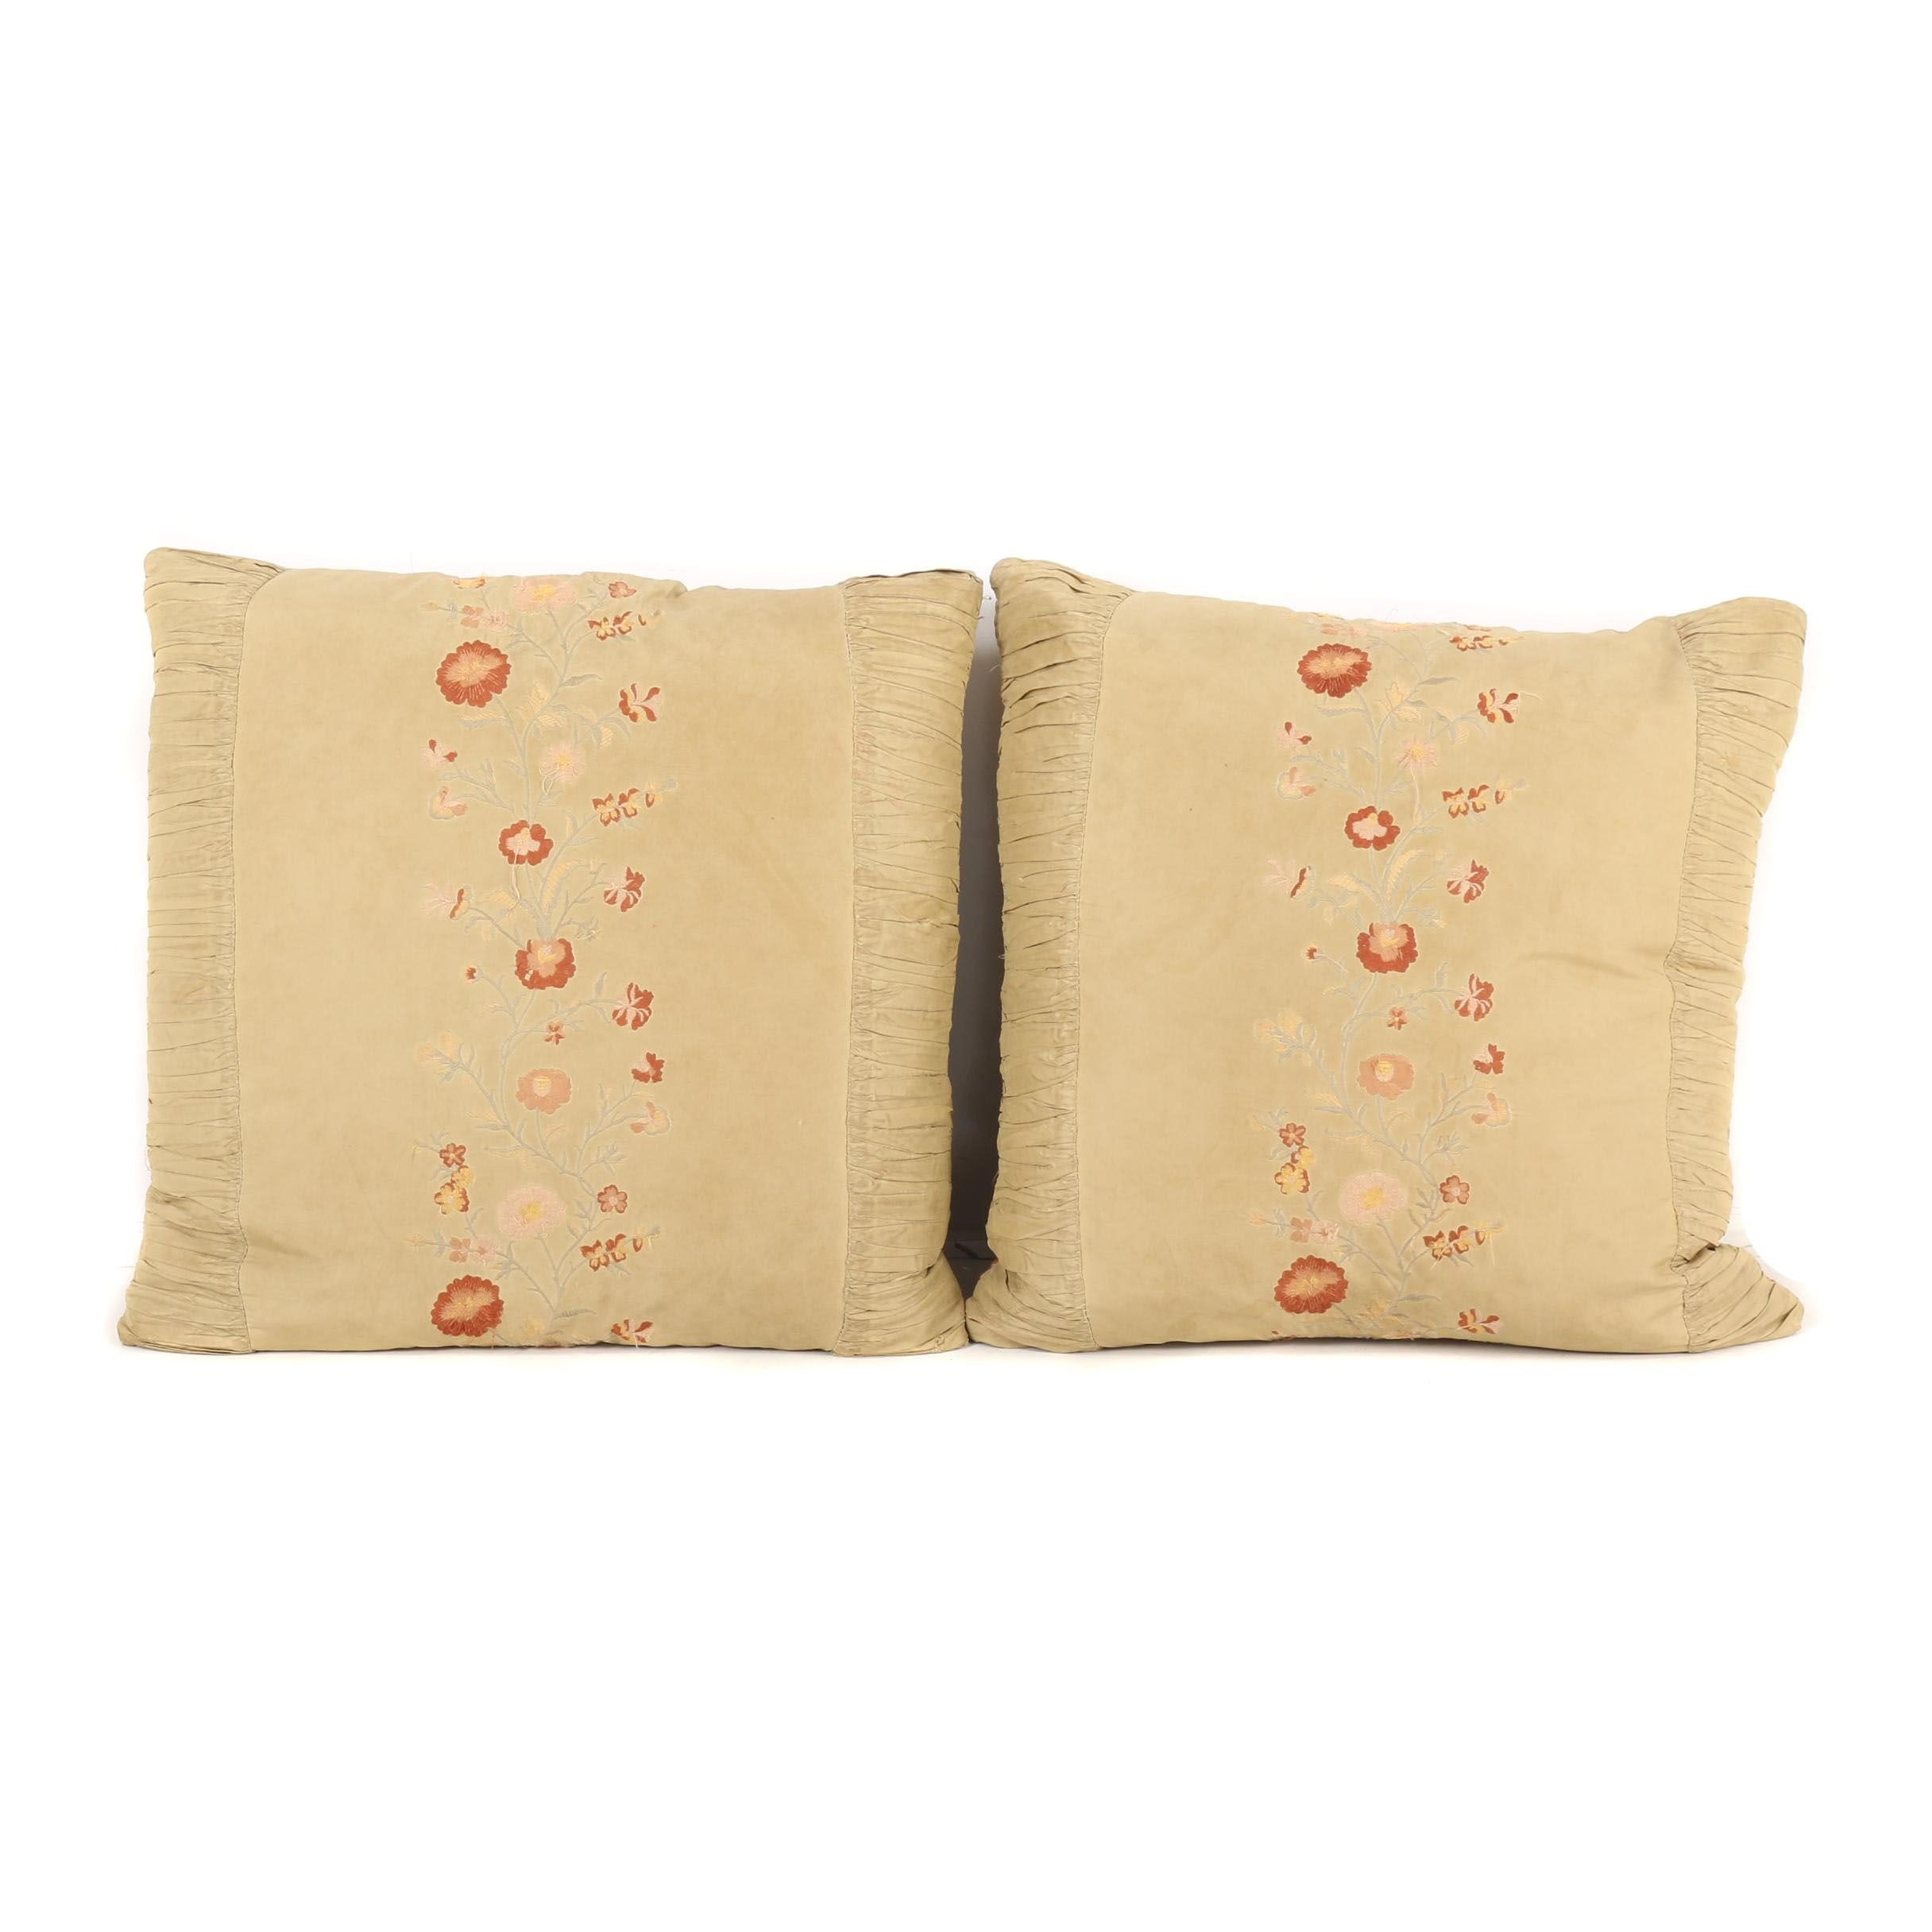 Embroidered Silk Accent Pillows with Down Filling